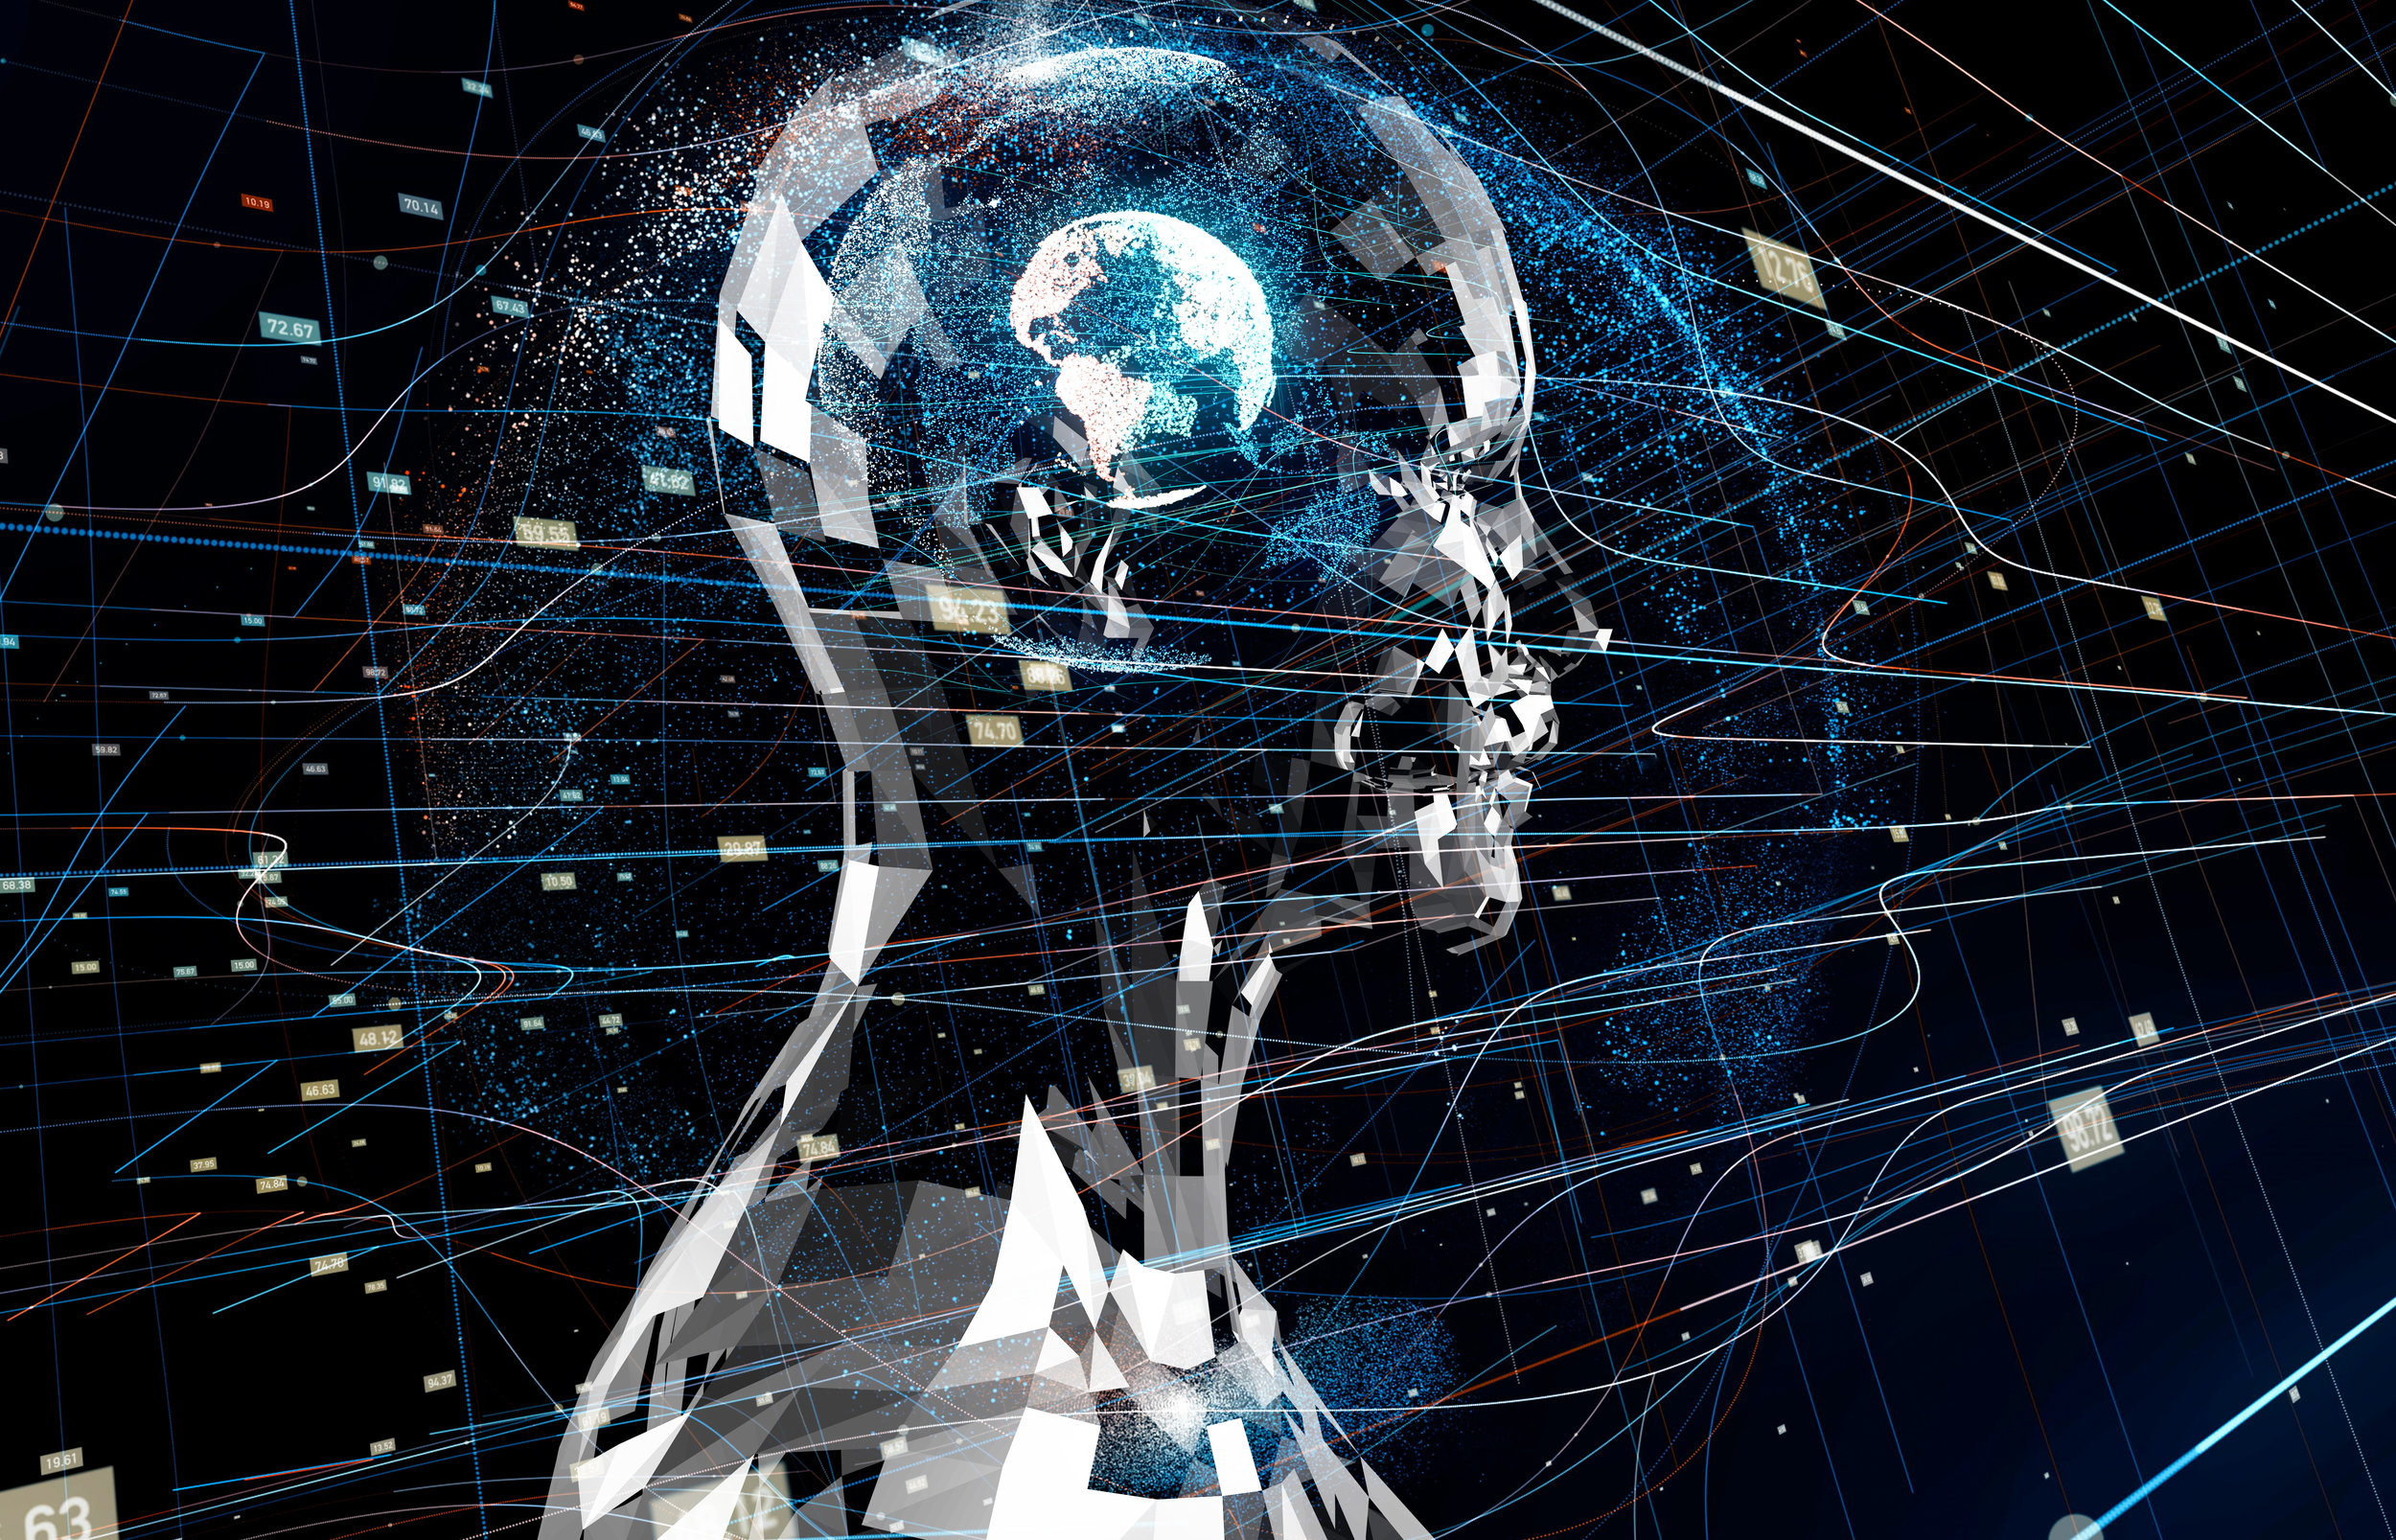 Abstract AI Robot with Global Brain